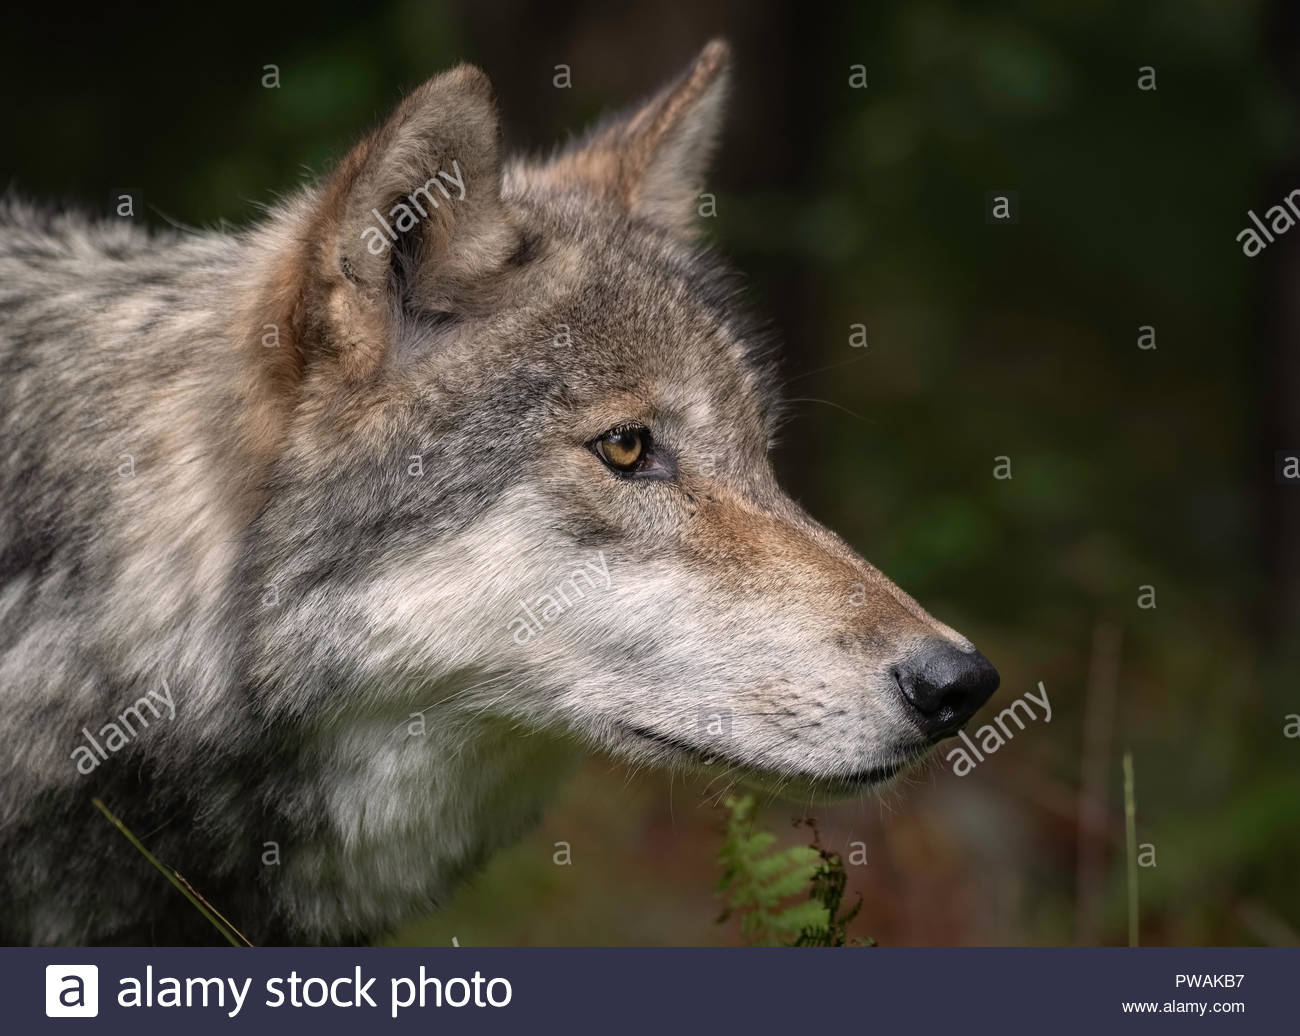 Timber Wolf (also known as a Gray Wolf or Grey Wolf) Portrait - Stock Image